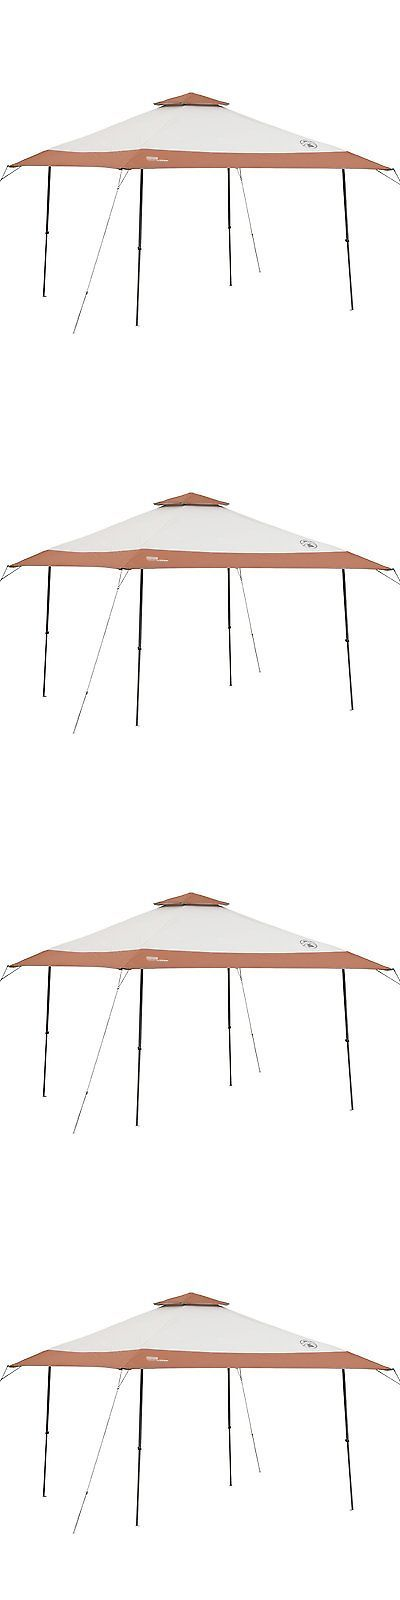 Canopies and Shelters 179011: Coleman 13 X 13 Back Home Instant Canopy, Square Portable Camping Pop Up Tent -> BUY IT NOW ONLY: $171.41 on eBay!